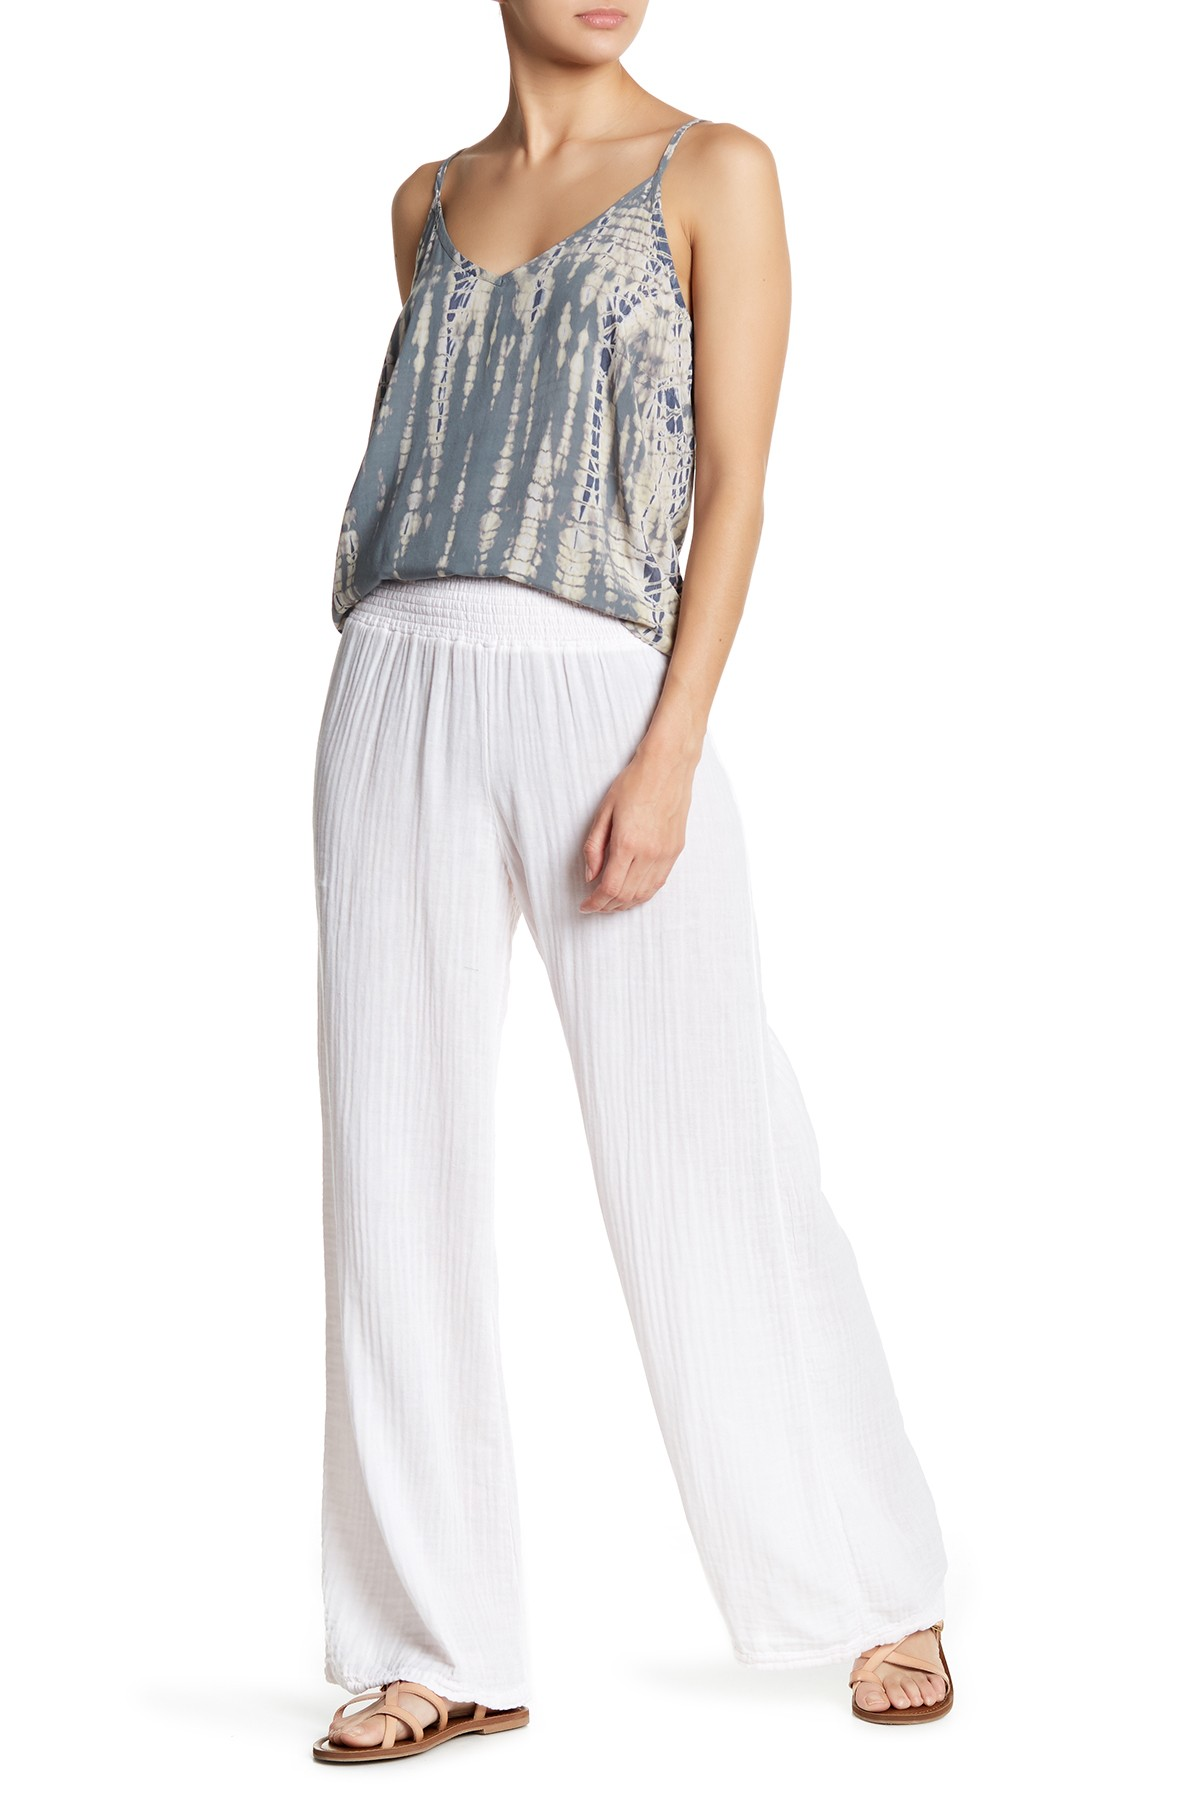 7a21bbb44fb8 Michael Stars | Wide Leg Smocked Pants | Products | White wide leg ...